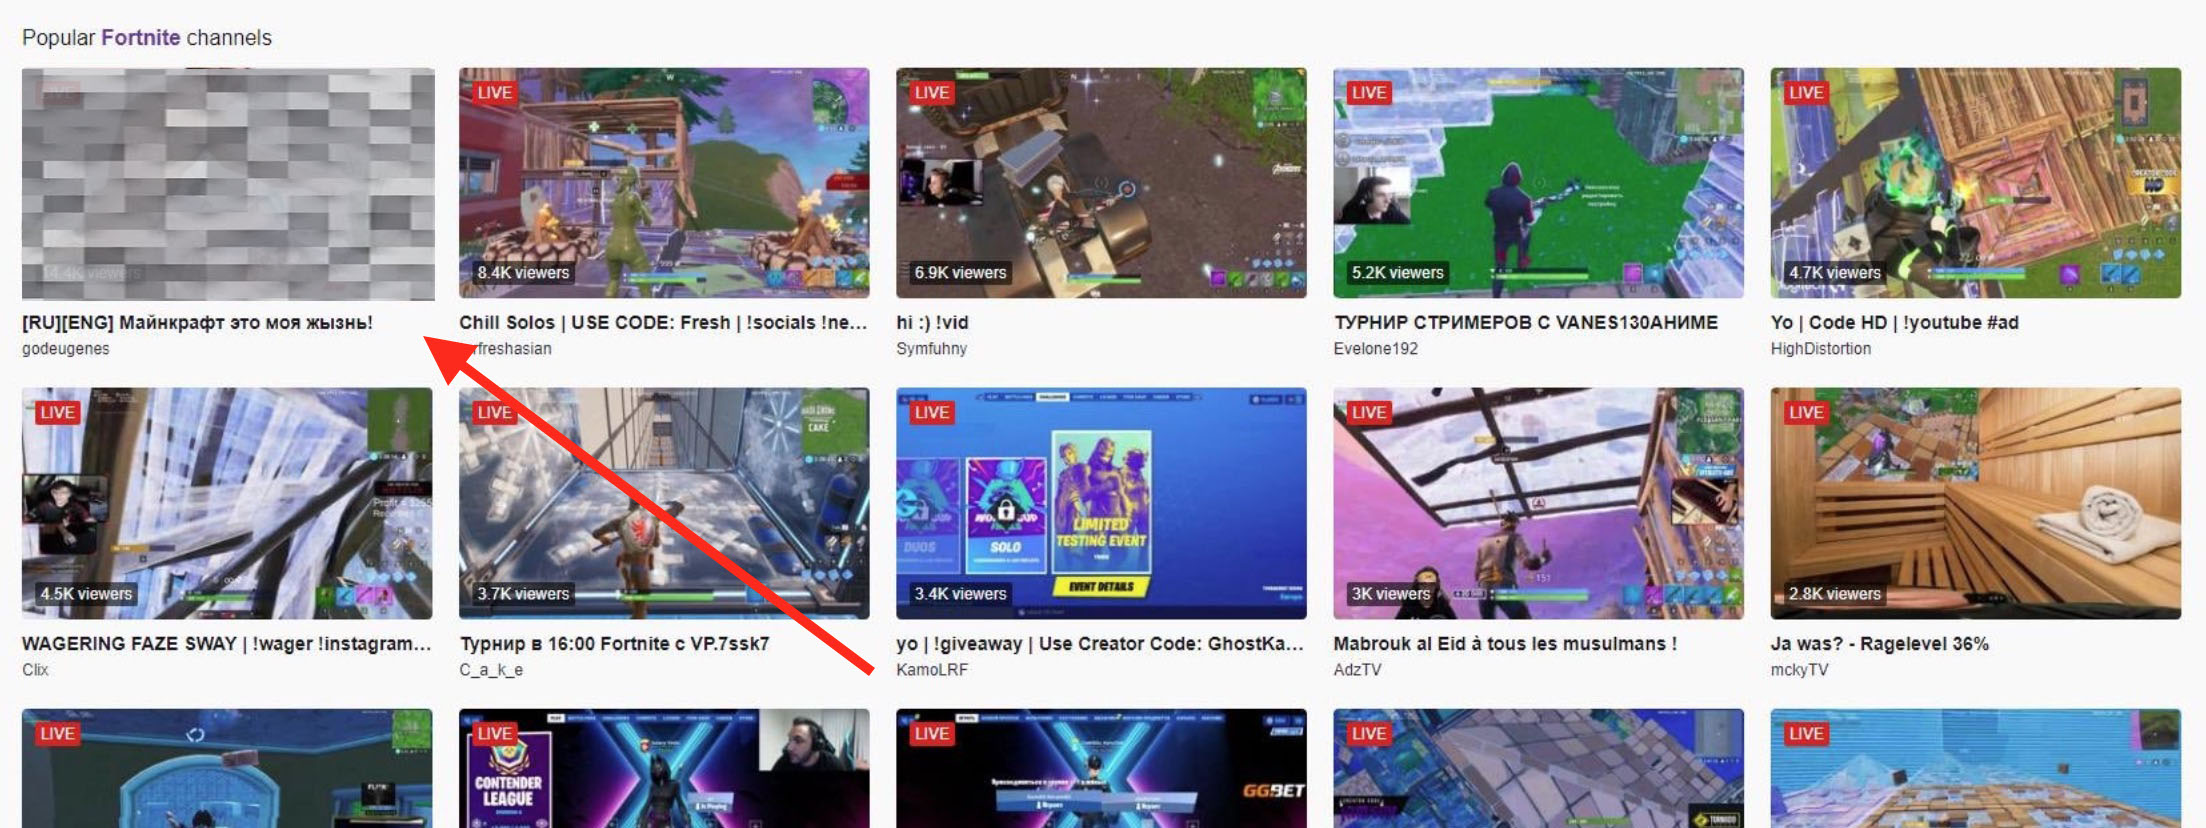 After hijacking Ninja's old channel, Twitch's algorithm is sometimes